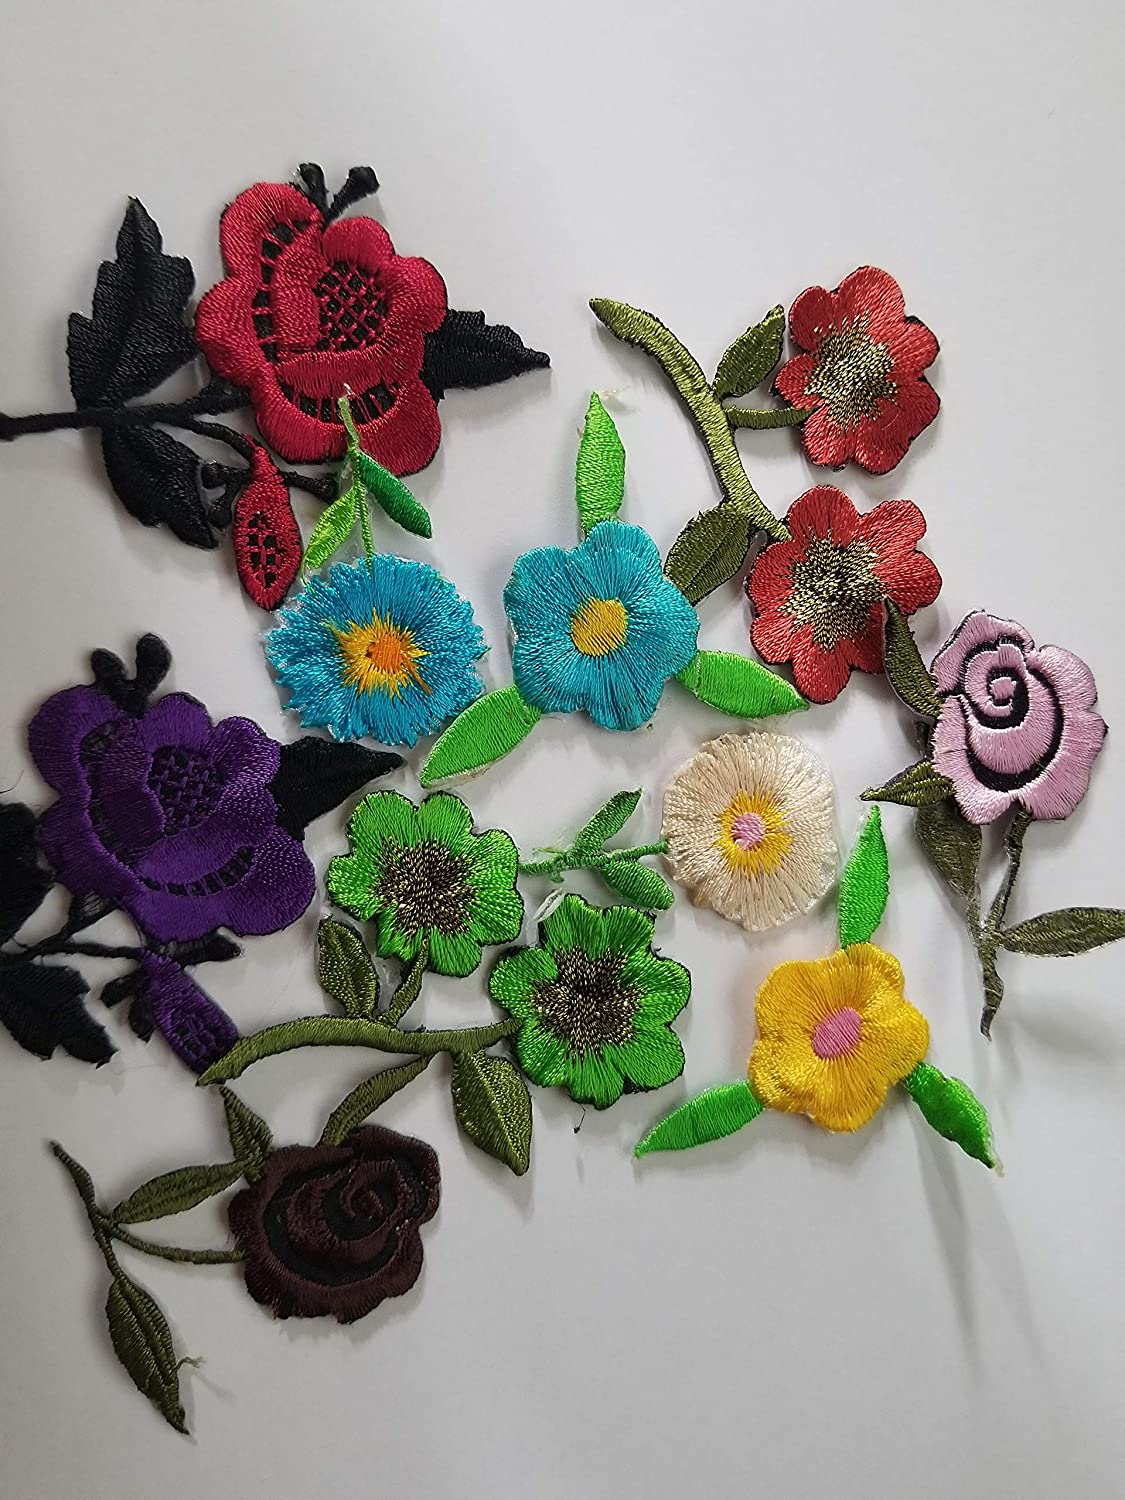 BLACK ROSE FLOWER EMBROIDERED BADGE SEW ON IRON ON PATCH APPLIQUE